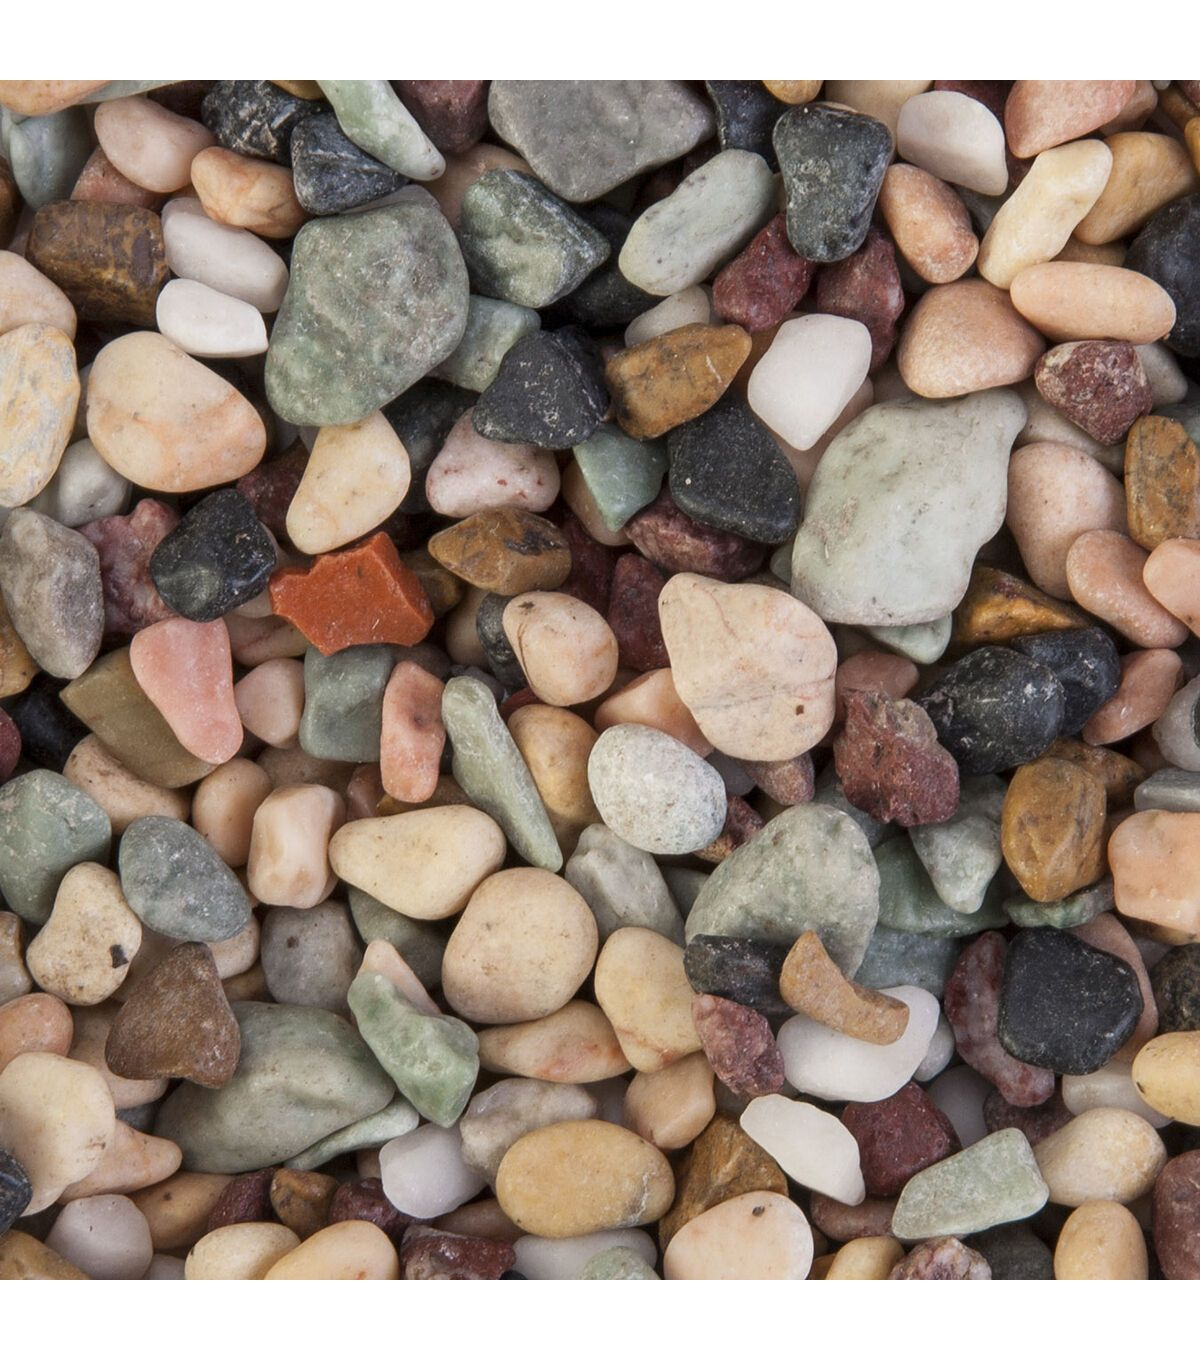 Panacea Urban Mix Pebbles 2lbs In 2020 Landscaping With Rocks